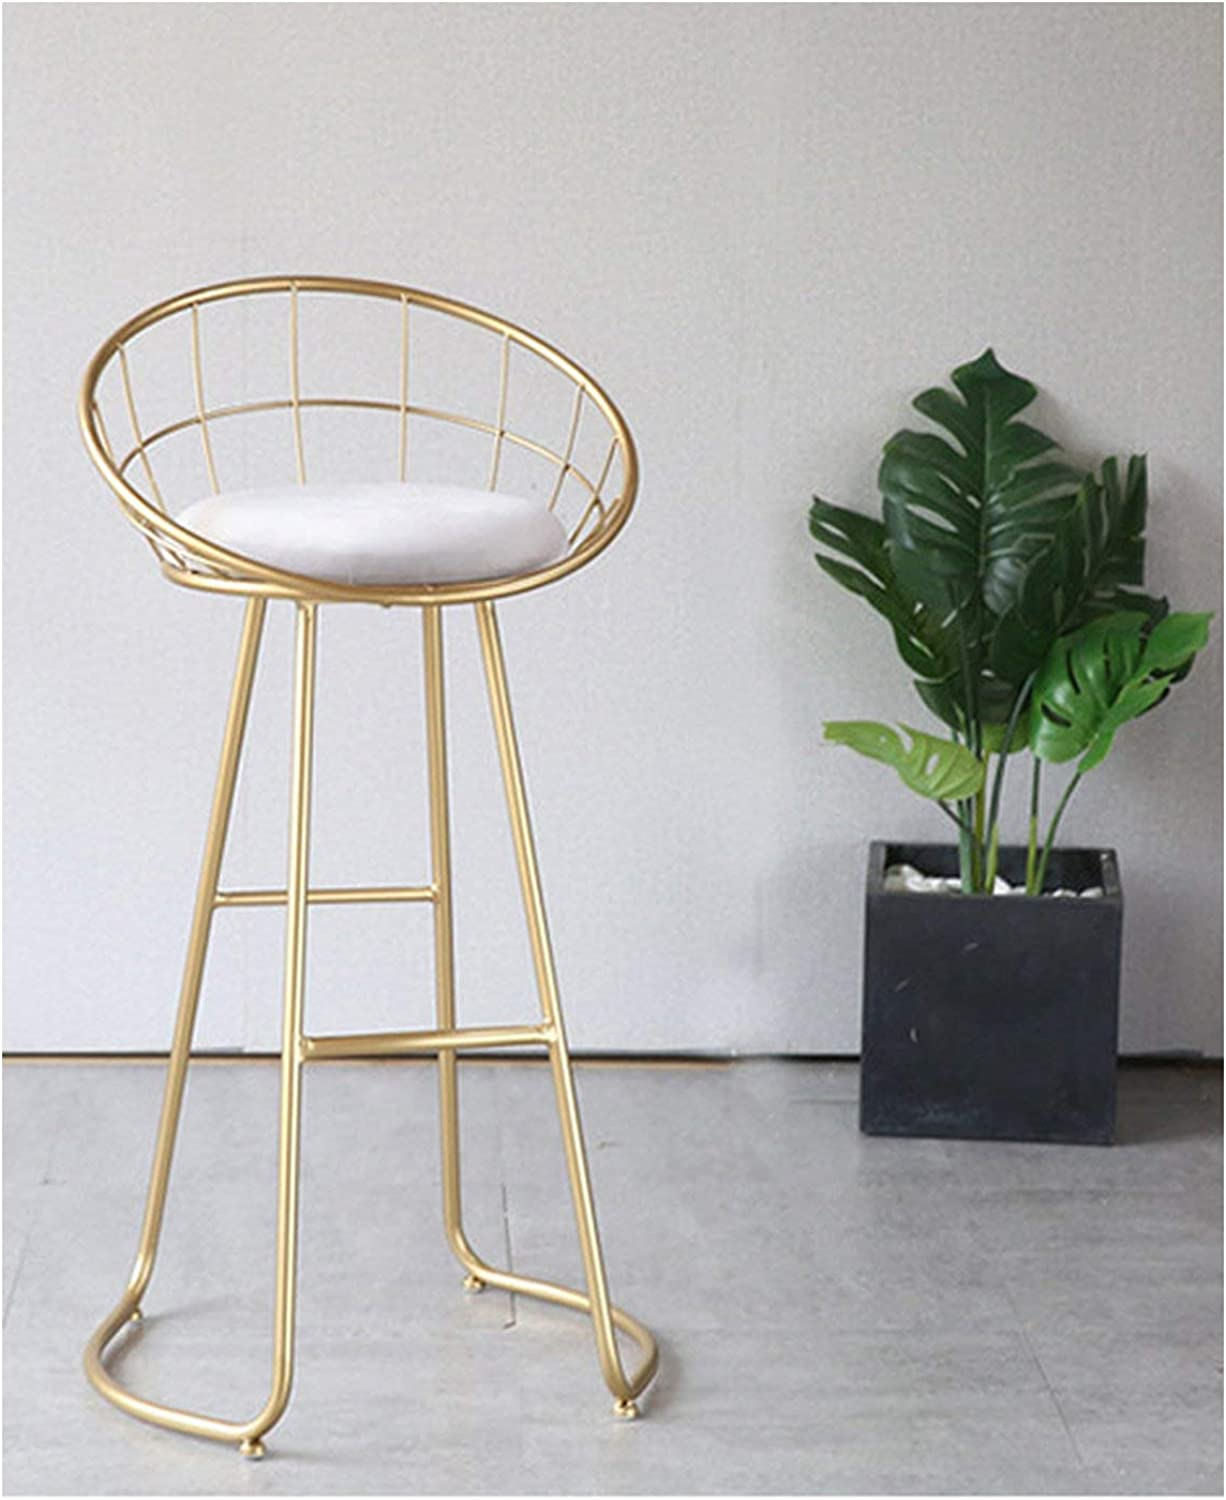 Metal Creative Nordic Bar Stool Bar Chair Fashion Counter Stool High Stool Simple Dining Chair,gold Height 75CM